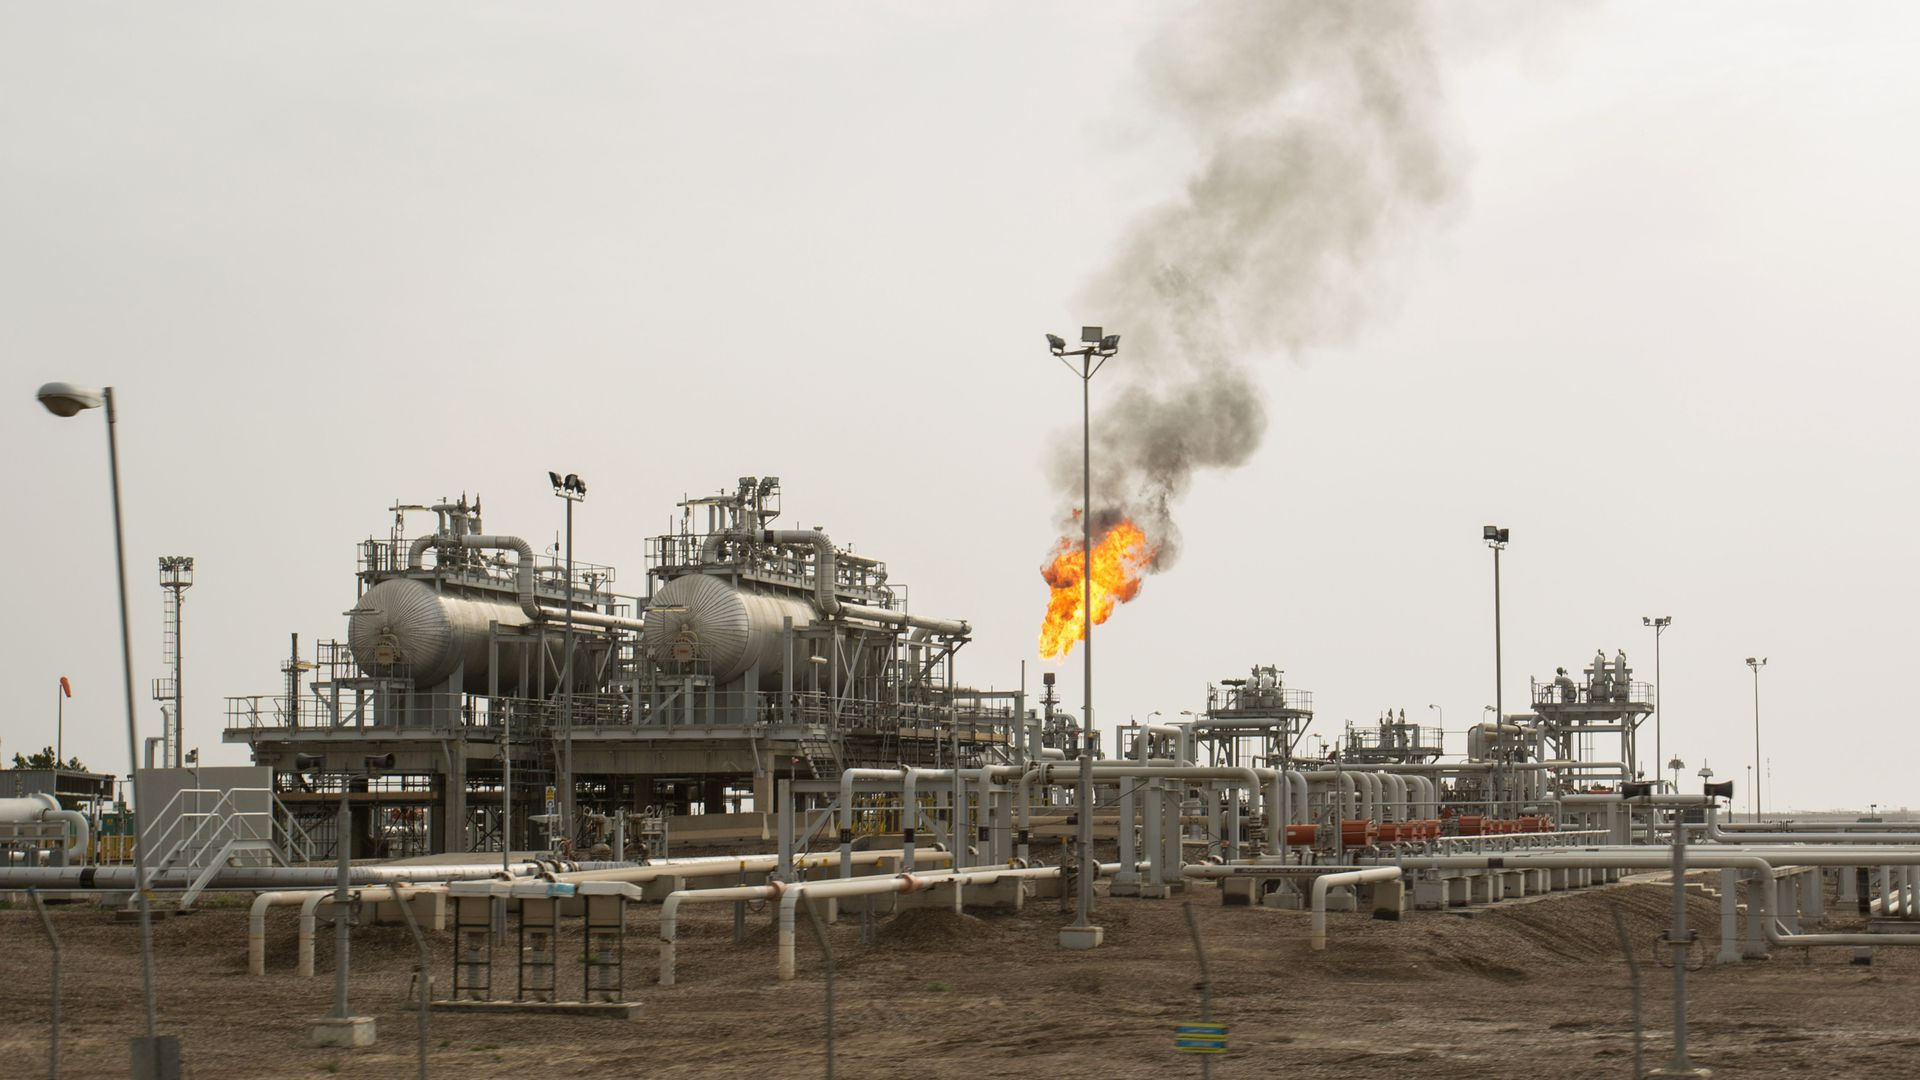 This is an image of machinery in an oil installation in a dirt field in Iraq.